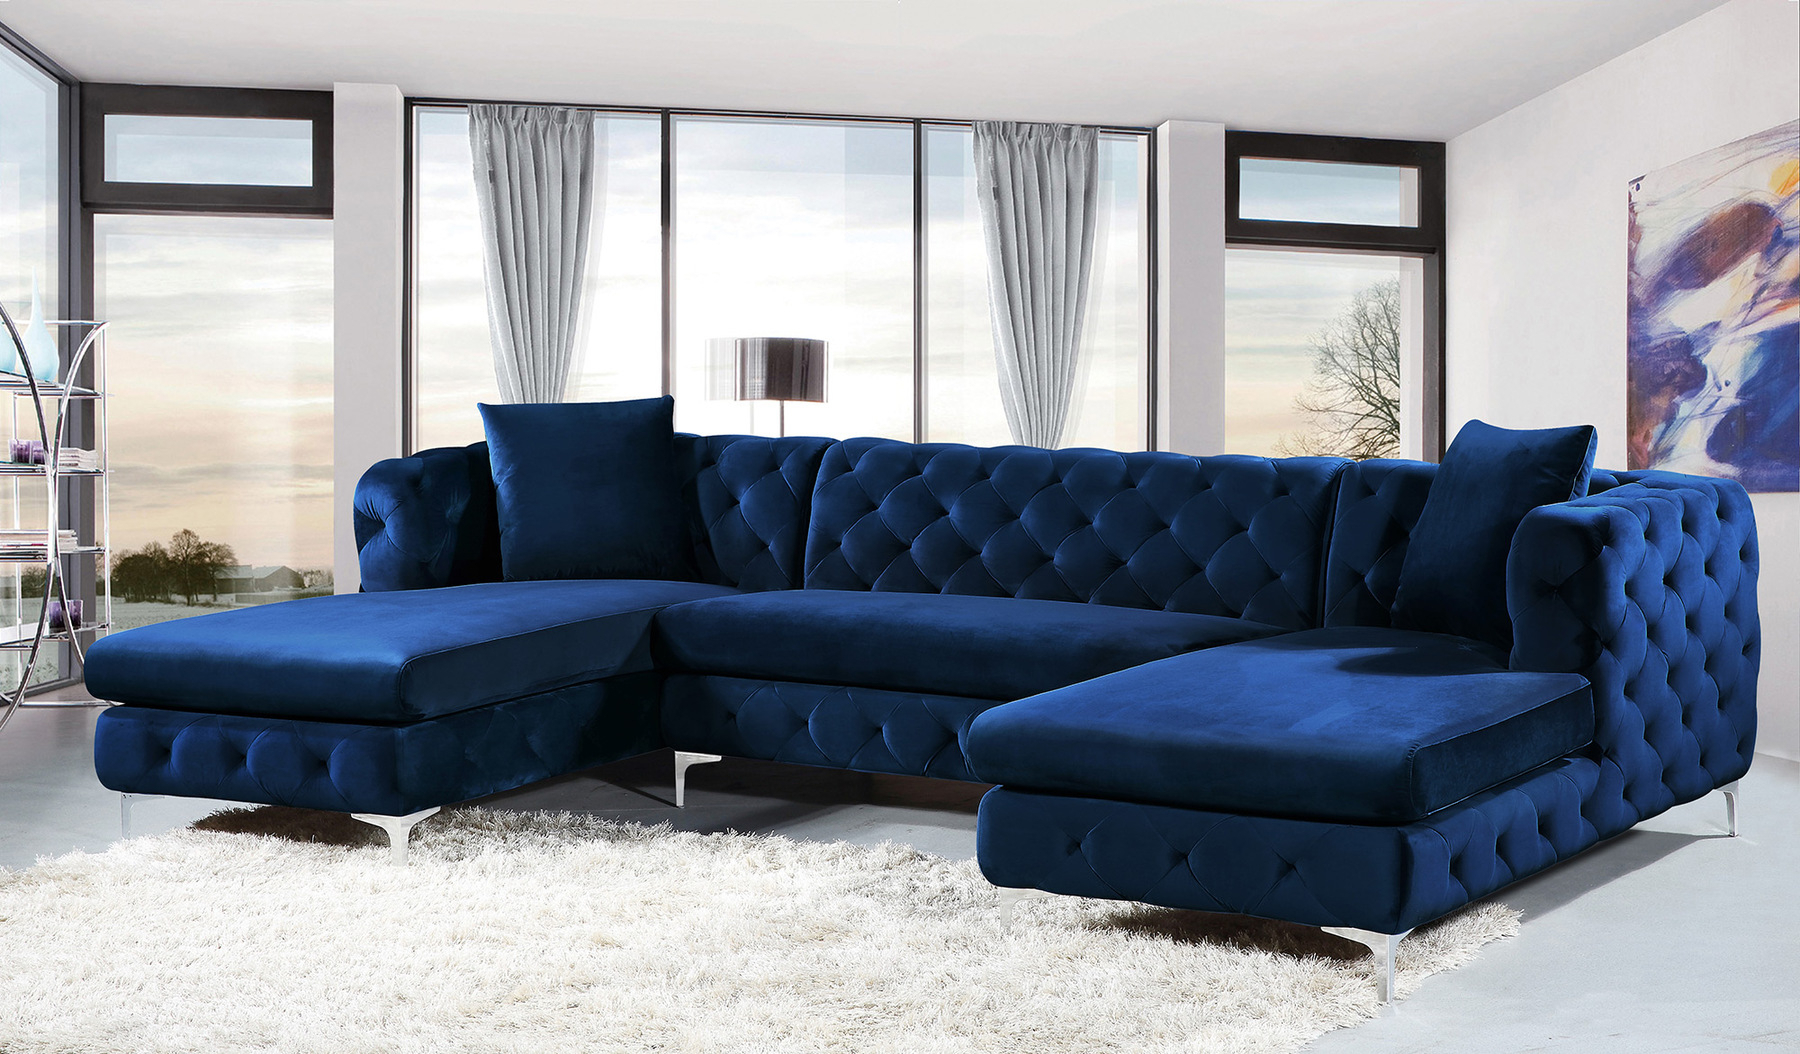 Blue Sectional Sofa Modular Sofas For Small Spaces Ashley Benton Pertaining To 2019 Benton 4 Piece Sectionals (Gallery 3 of 20)